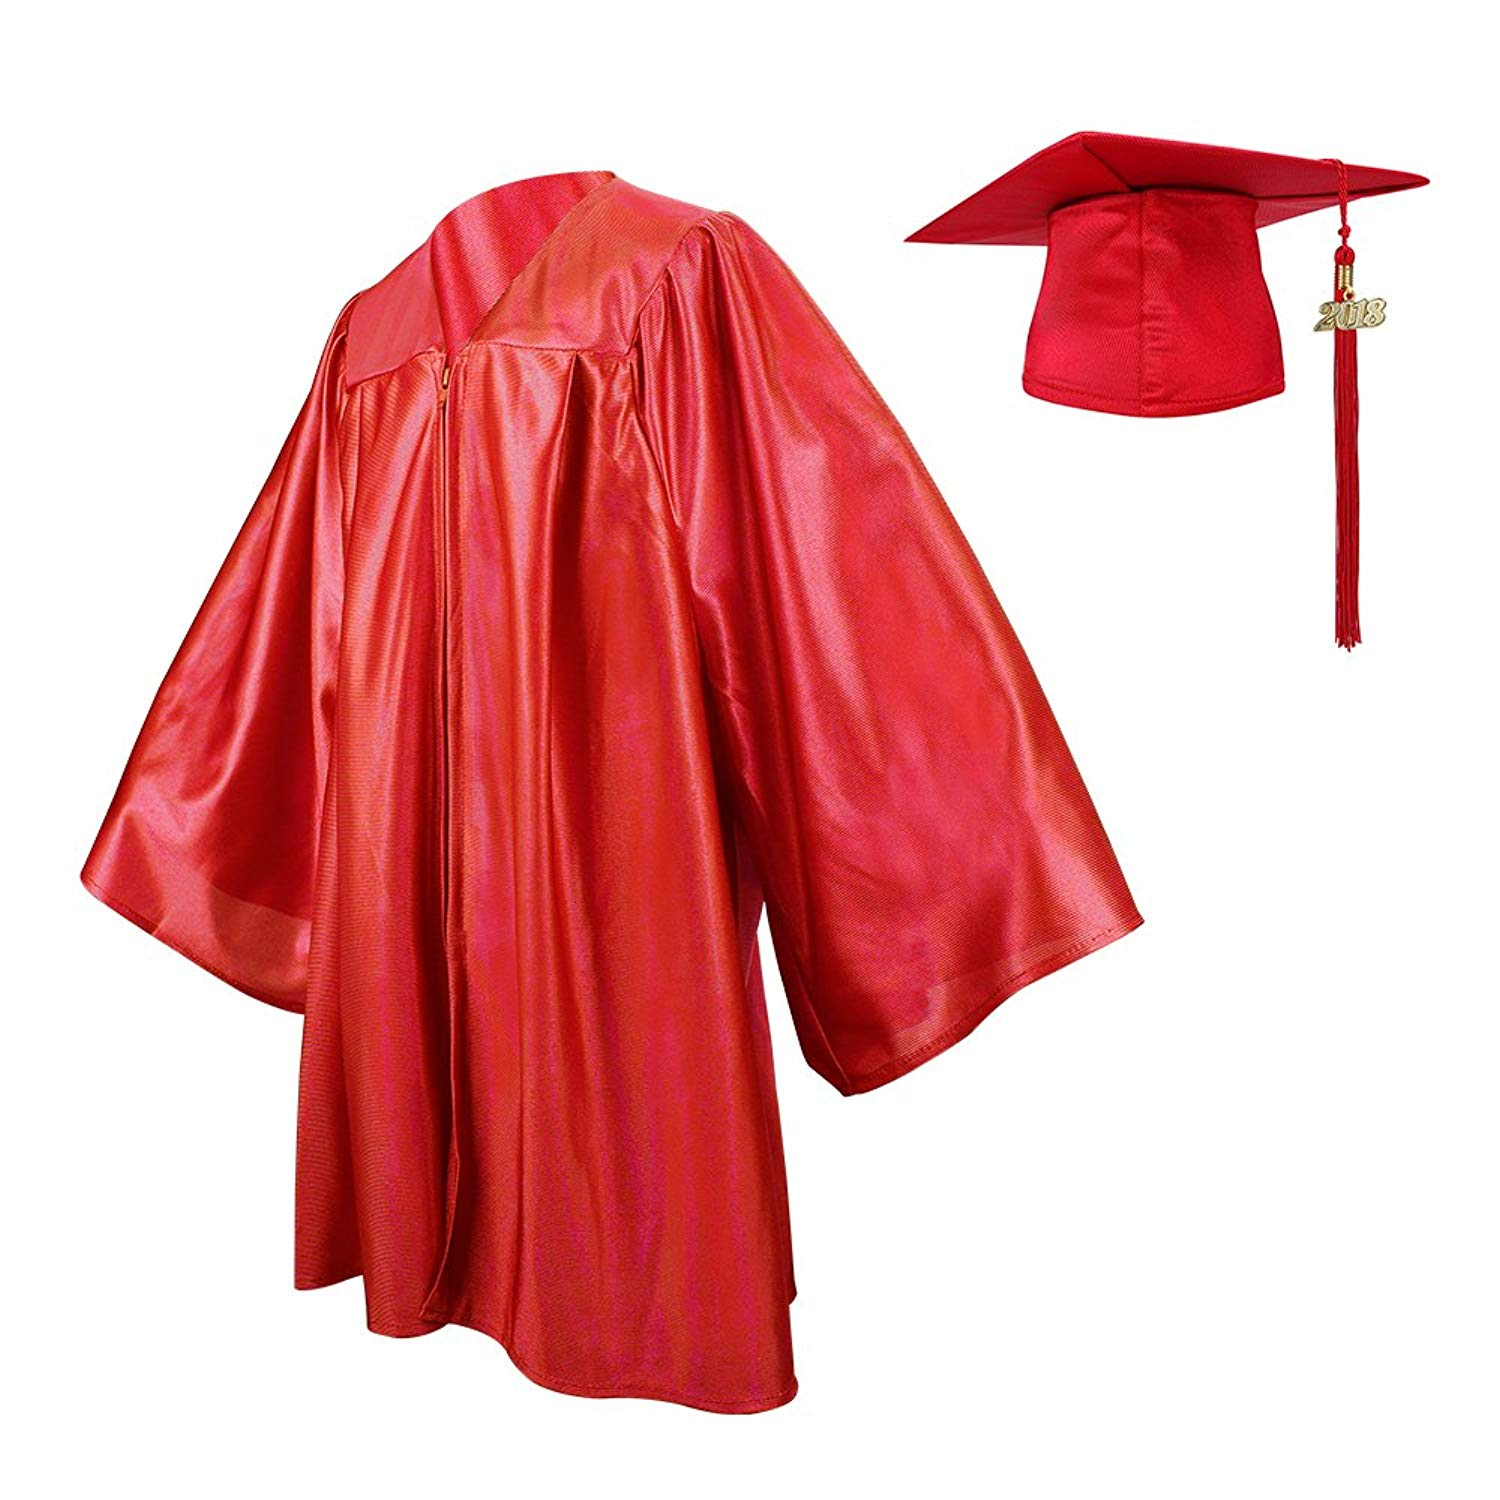 92a4c5bde13 Ninuo Shiny Kindergarten Graduation Gown Cap Tassel Set 2018 Costume Robes  for Baby Todder Kids Photography